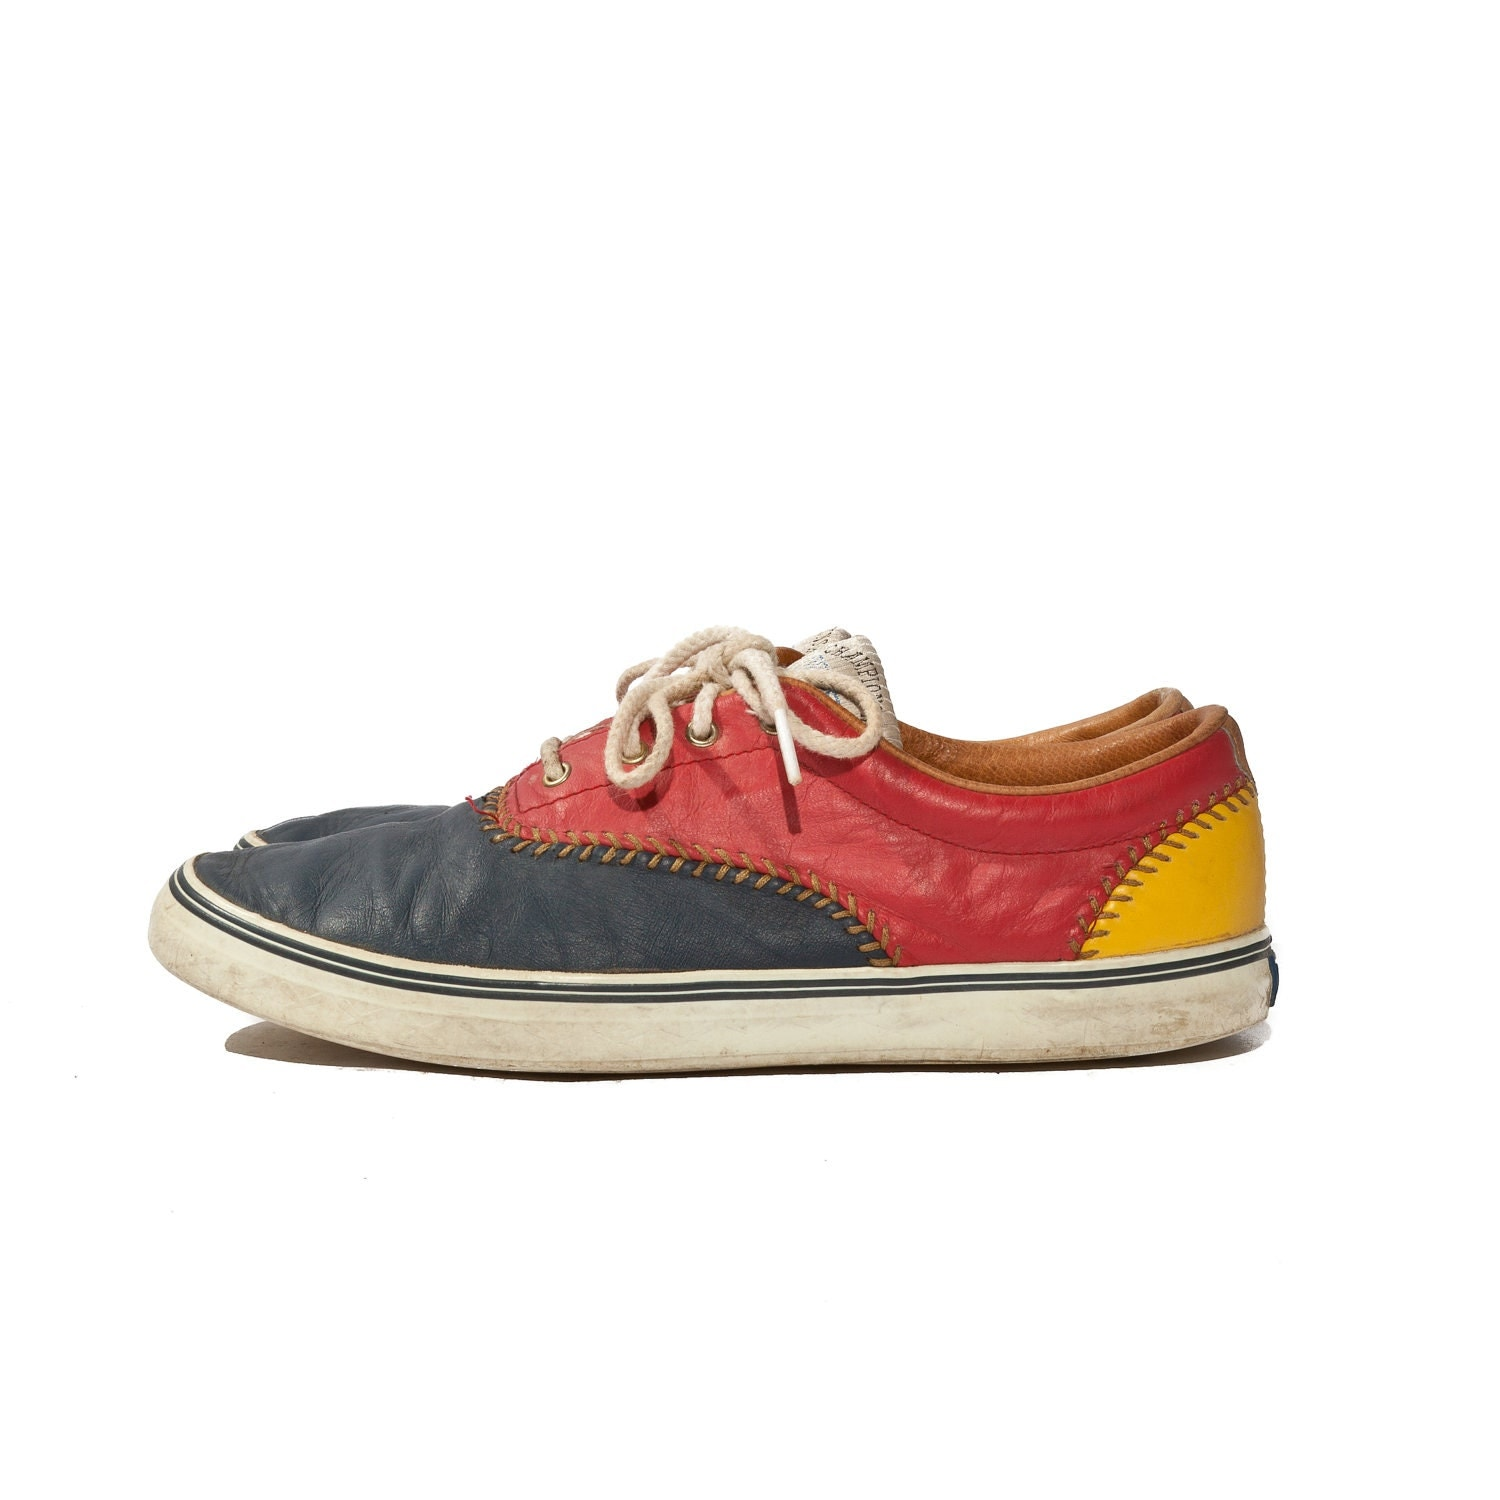 Keds Tennis Shoes Primary Colors Red Yellow Blue Champion Series size